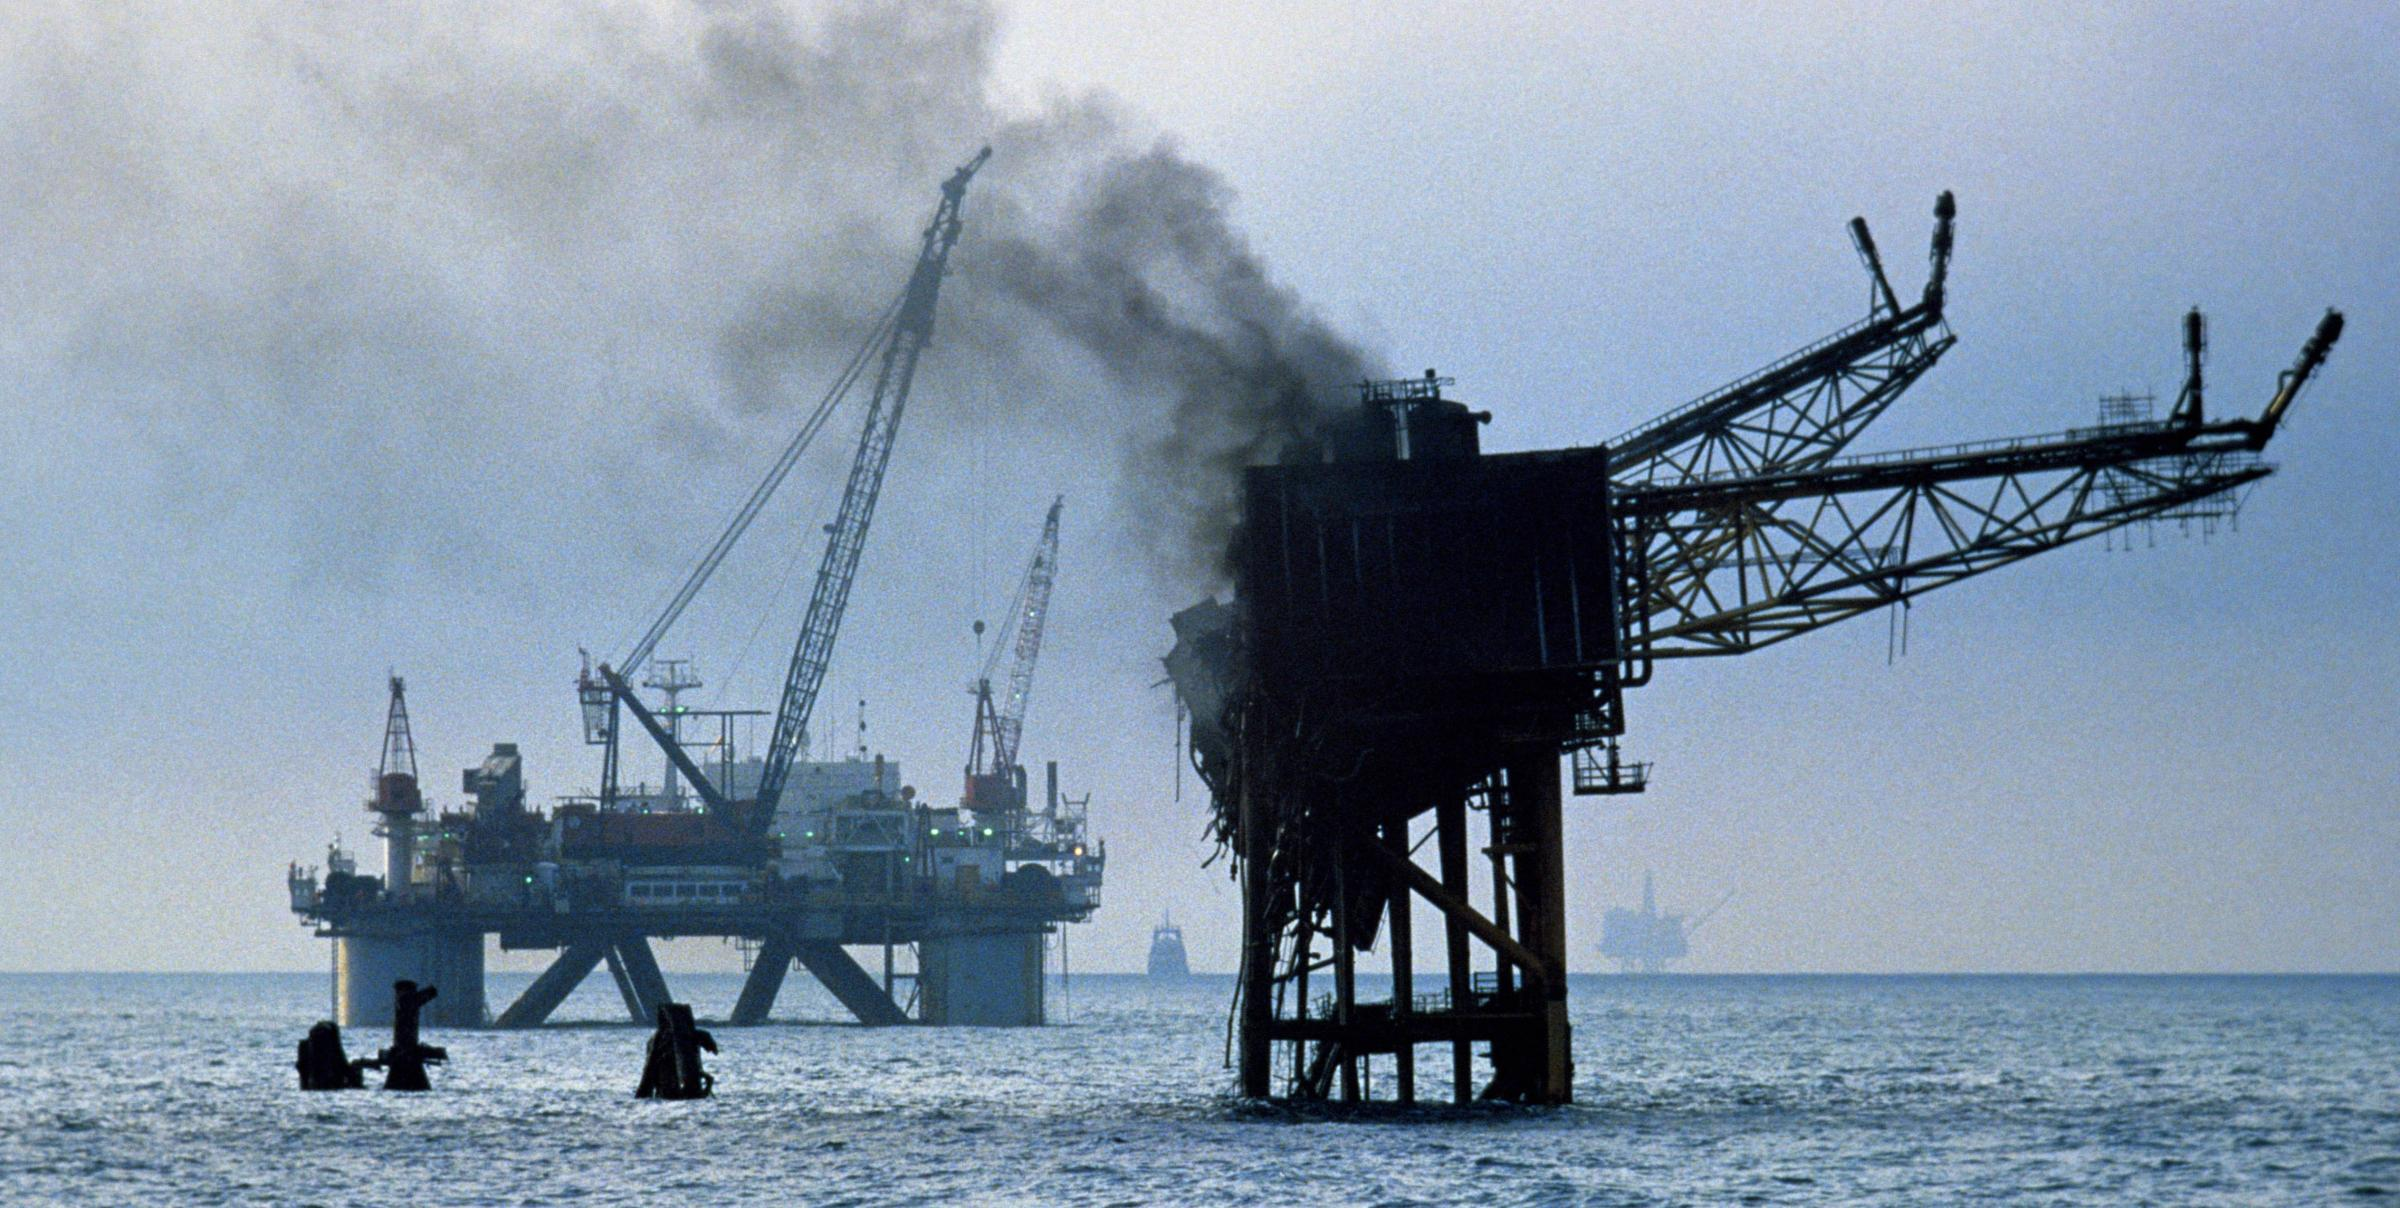 The North Sea platform exploded in July 1988, leaving 167 men dead